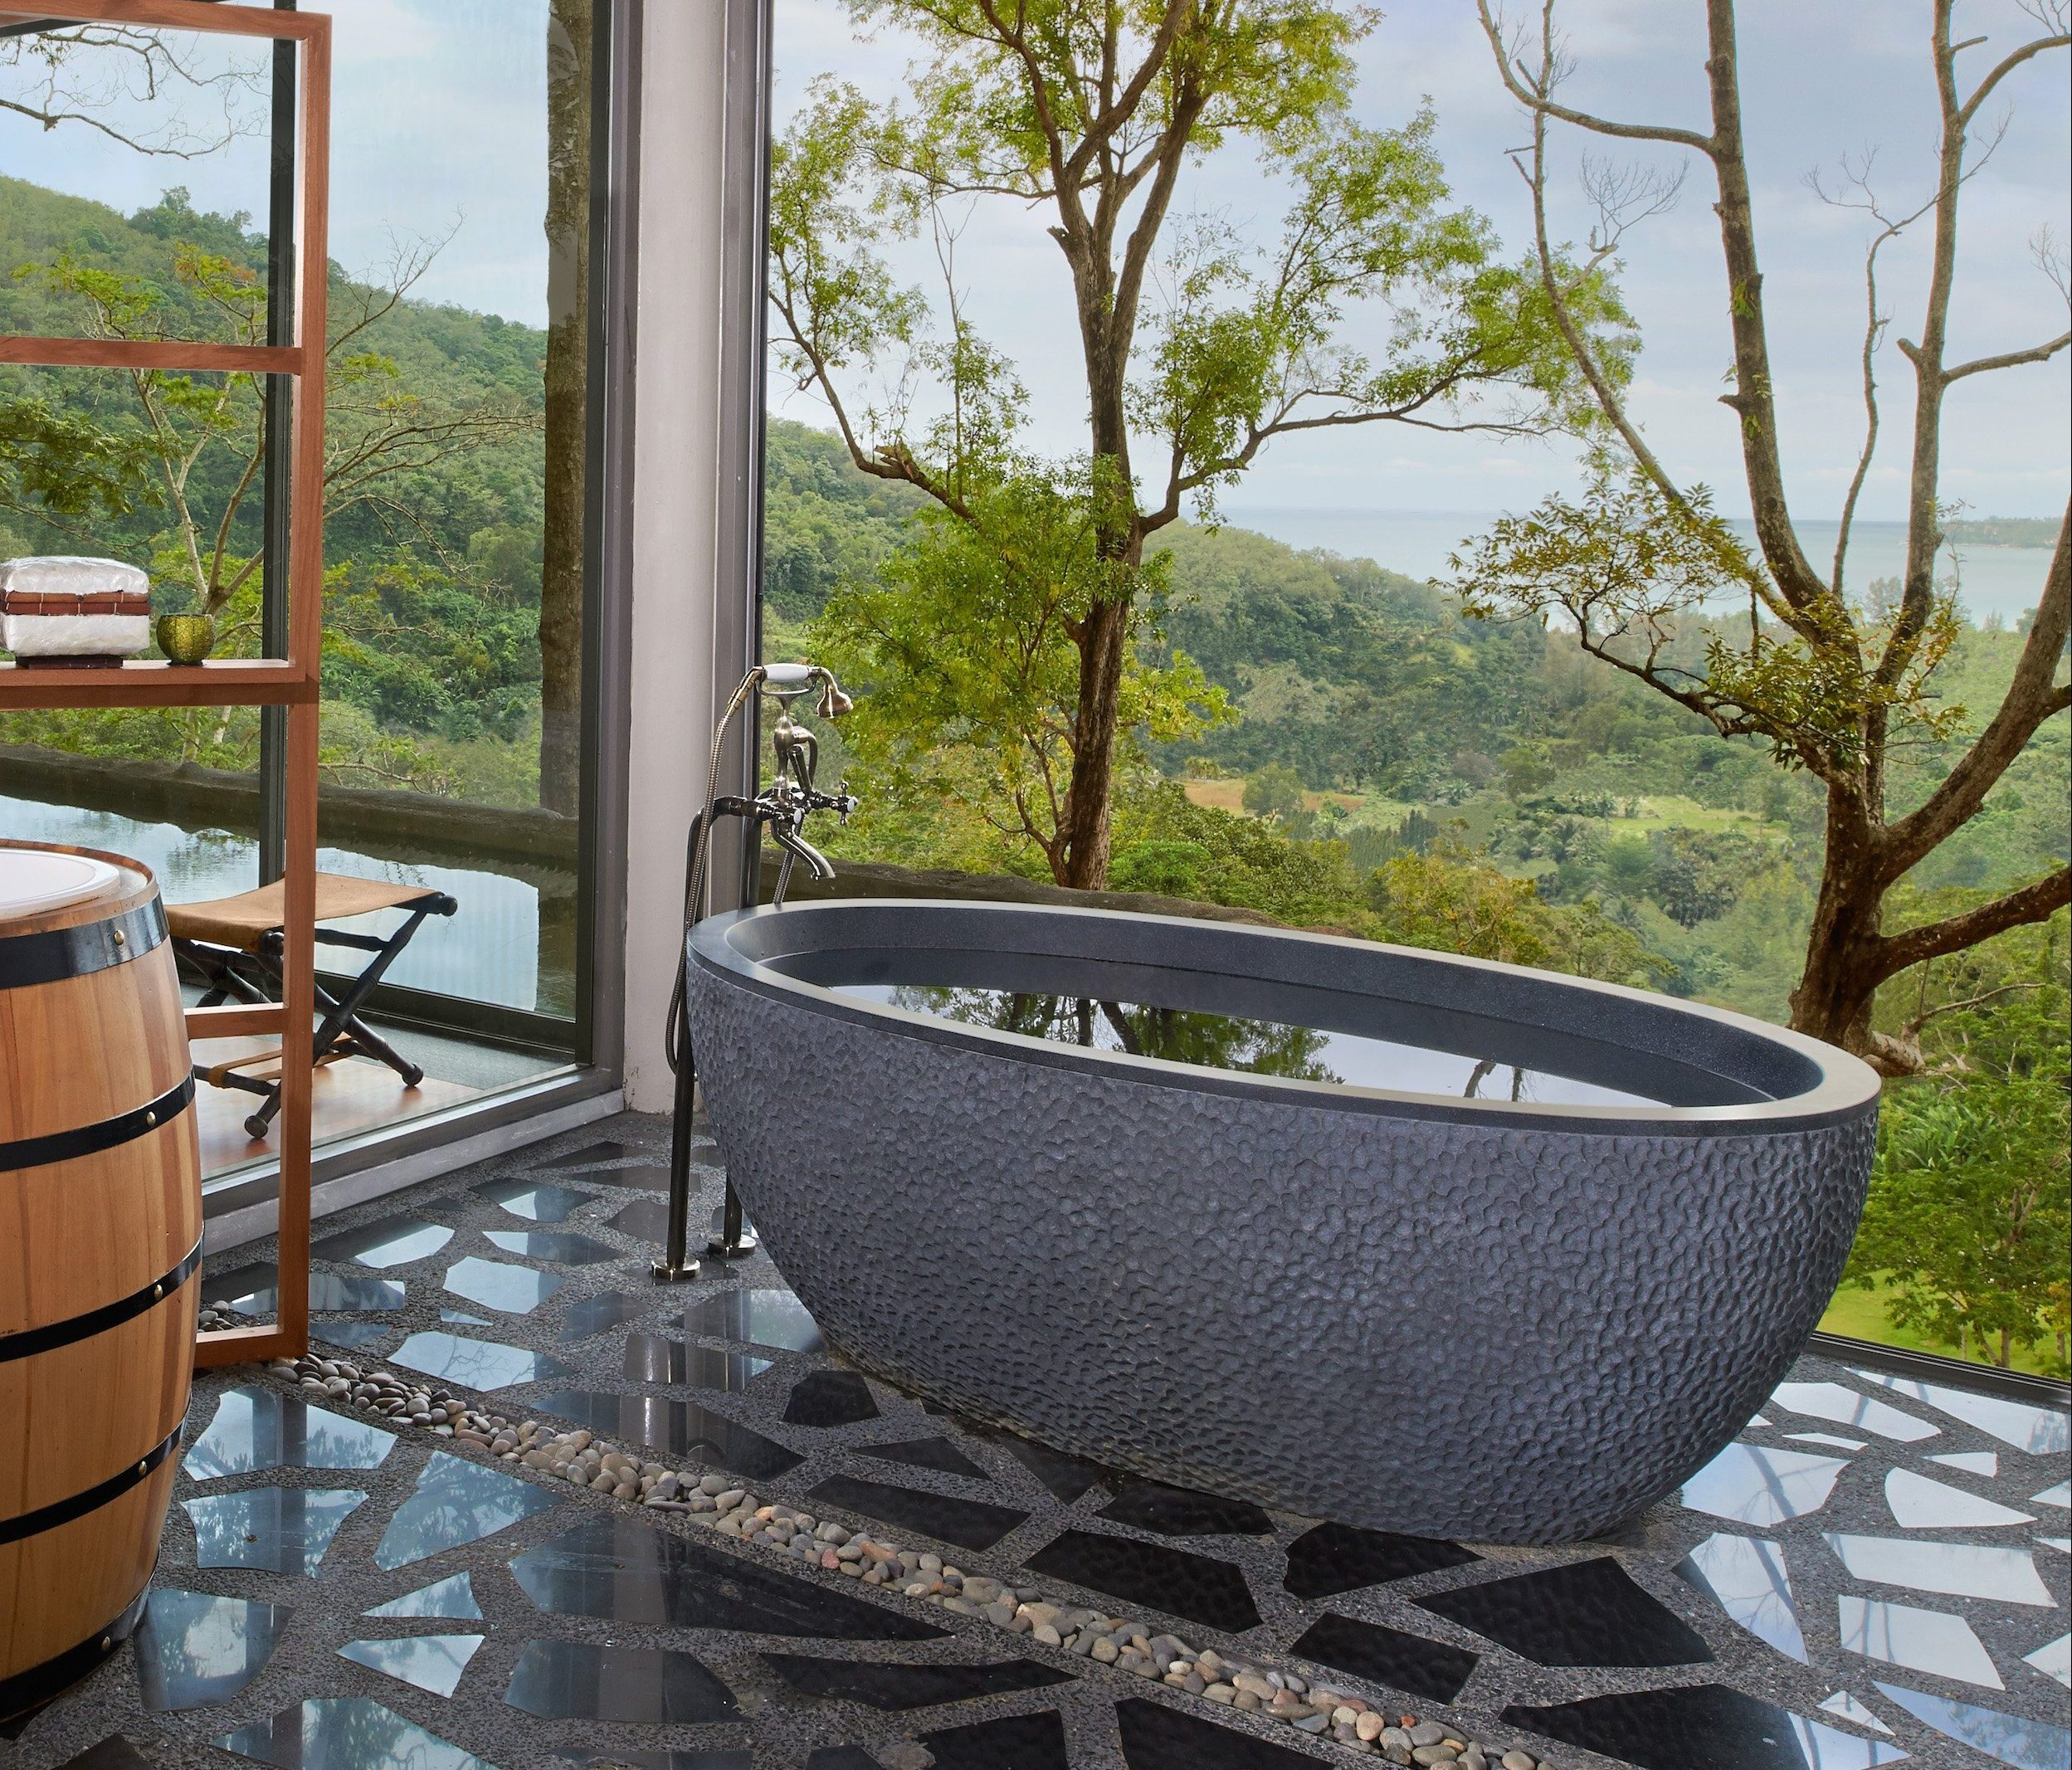 Keemala Beyond Enchanting Hotel – Bathtub